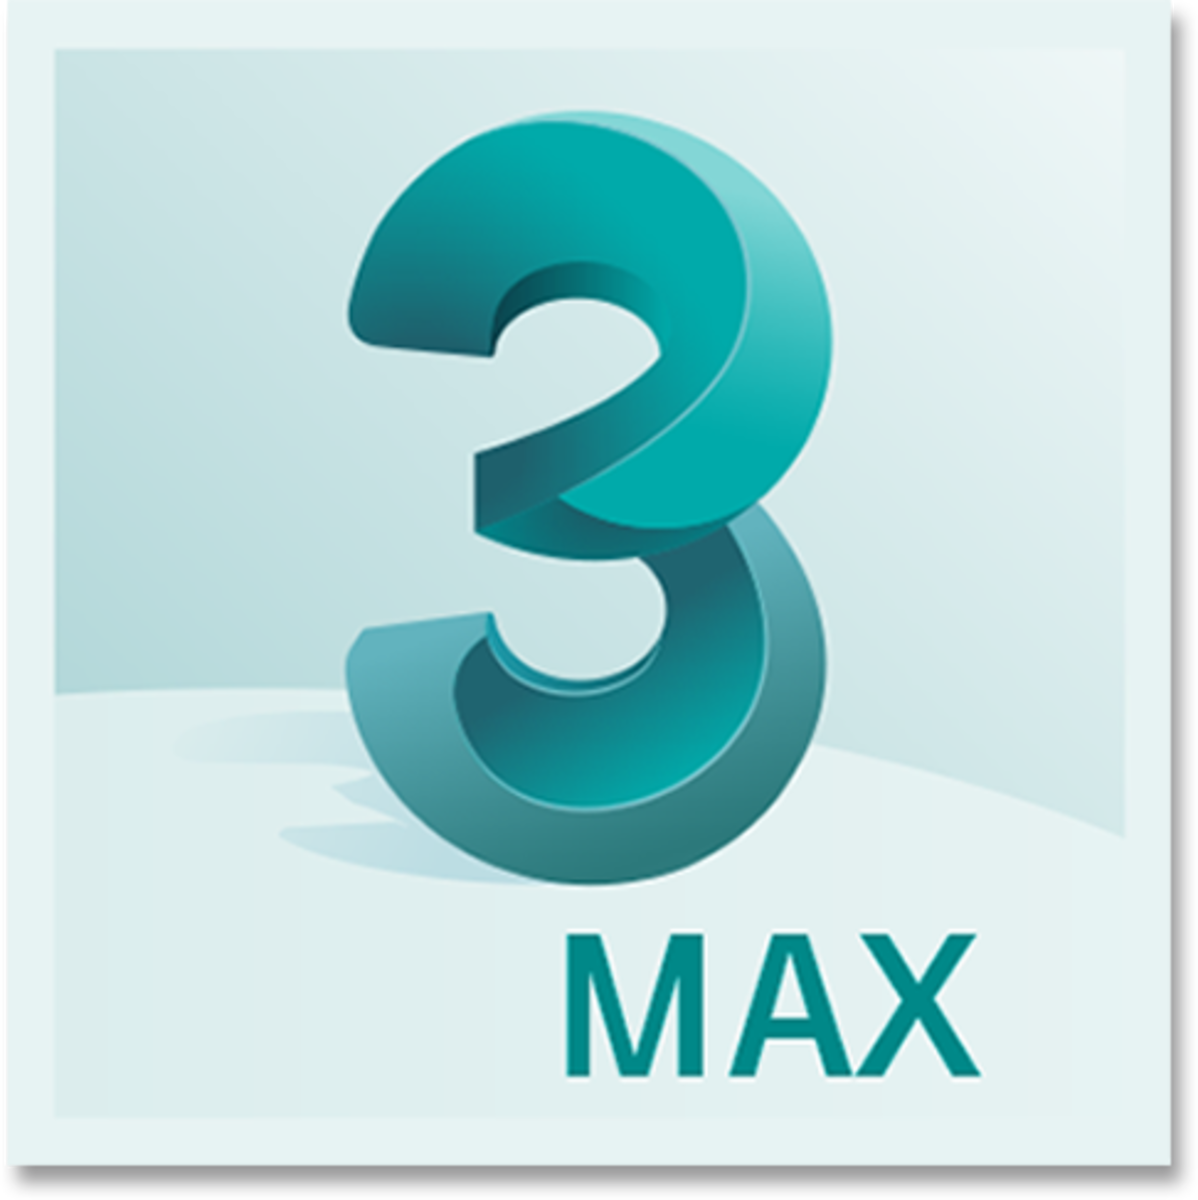 The above image is the Logo for 3DS MAX